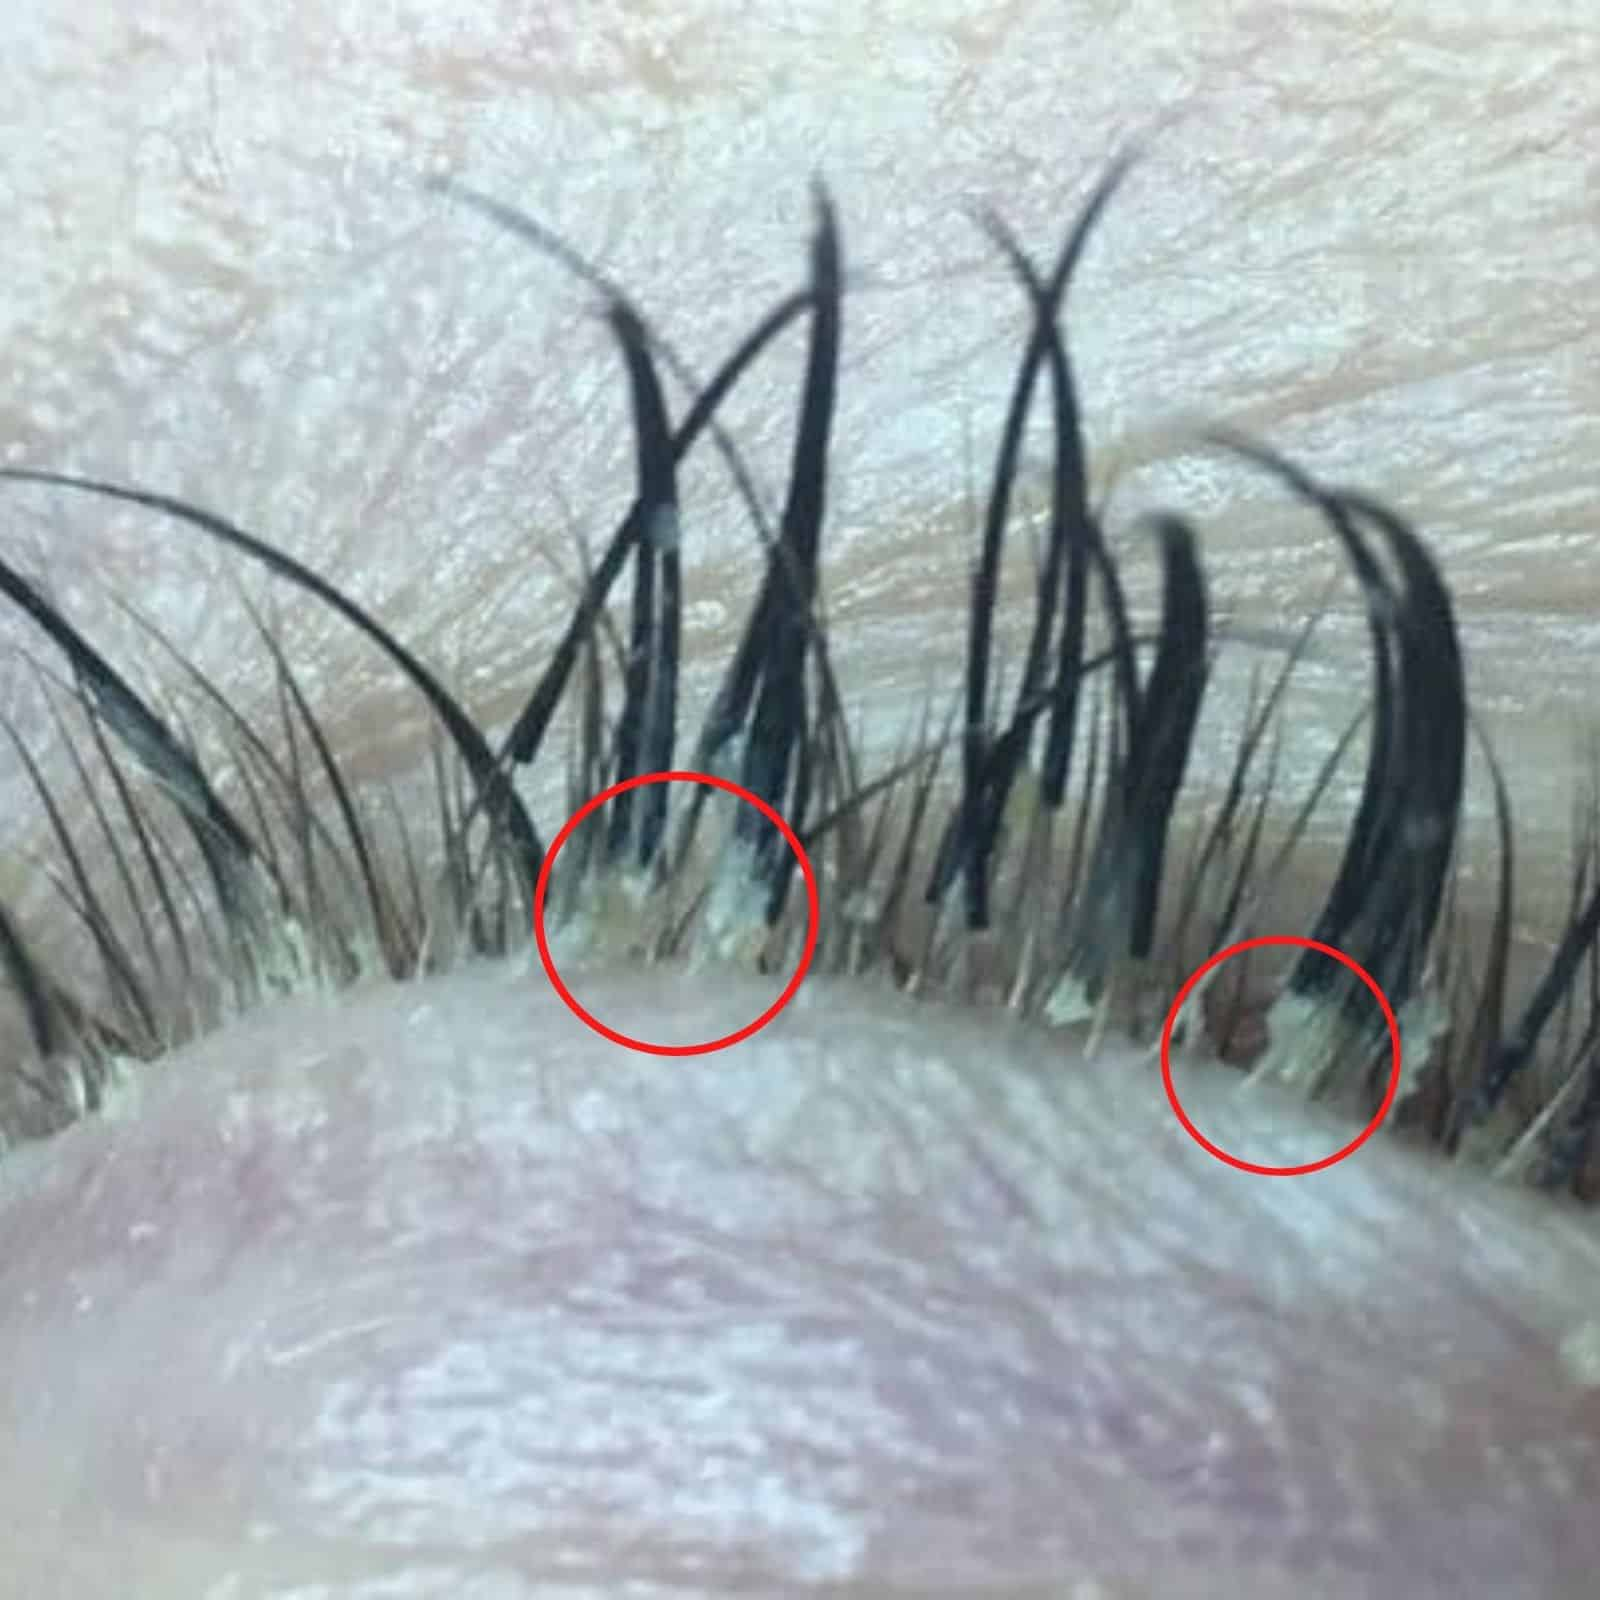 Lash mite infestation on lash line. Circled lash mites eggs.